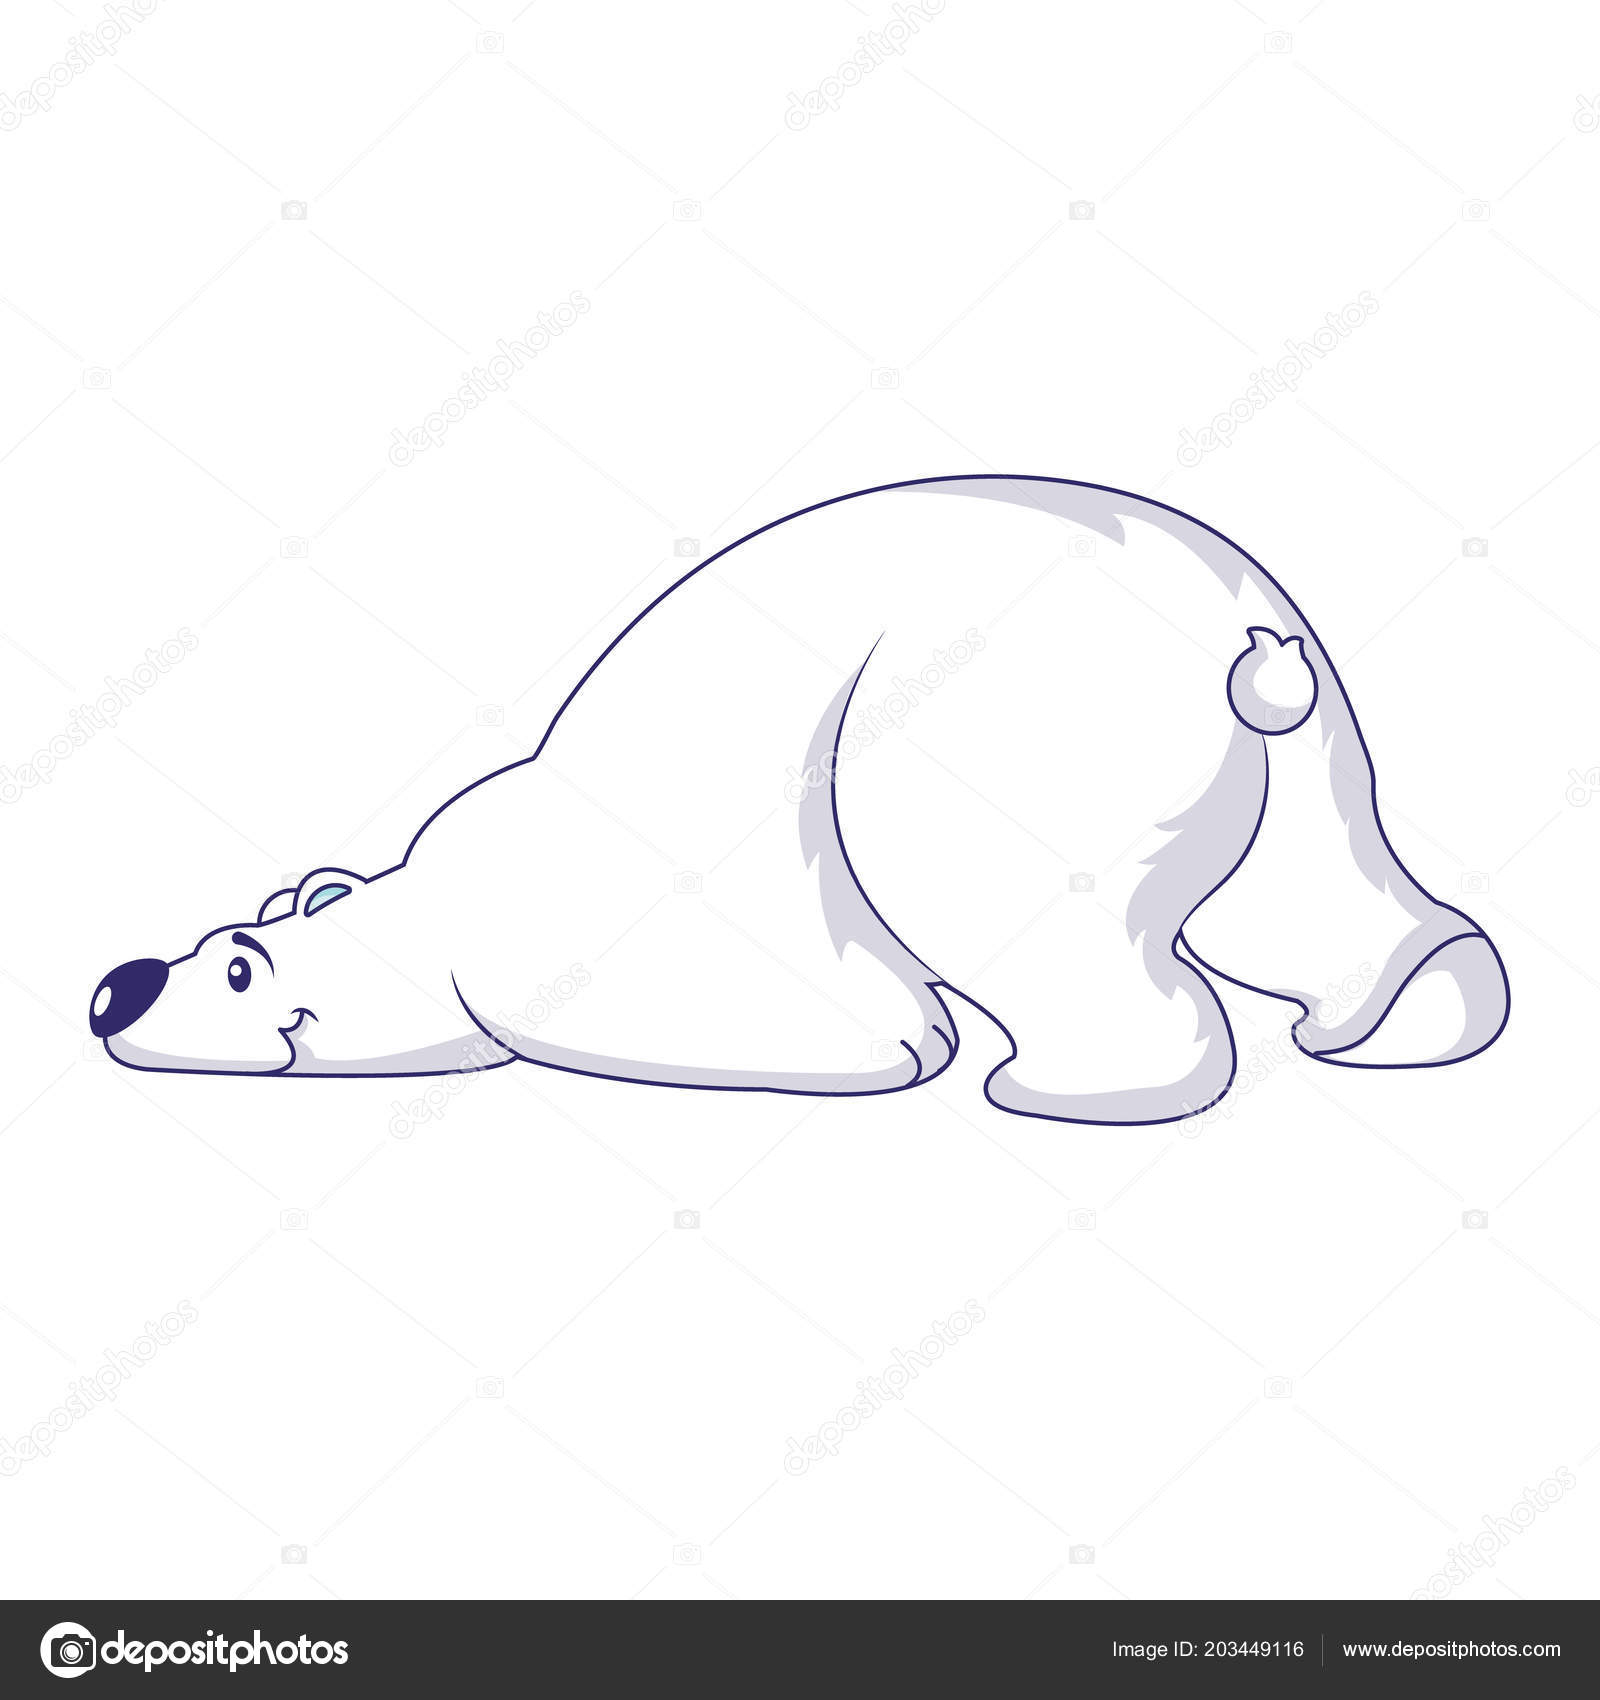 Bear Sleep Free Vector Art - (108 Free Downloads) - Vecteezy